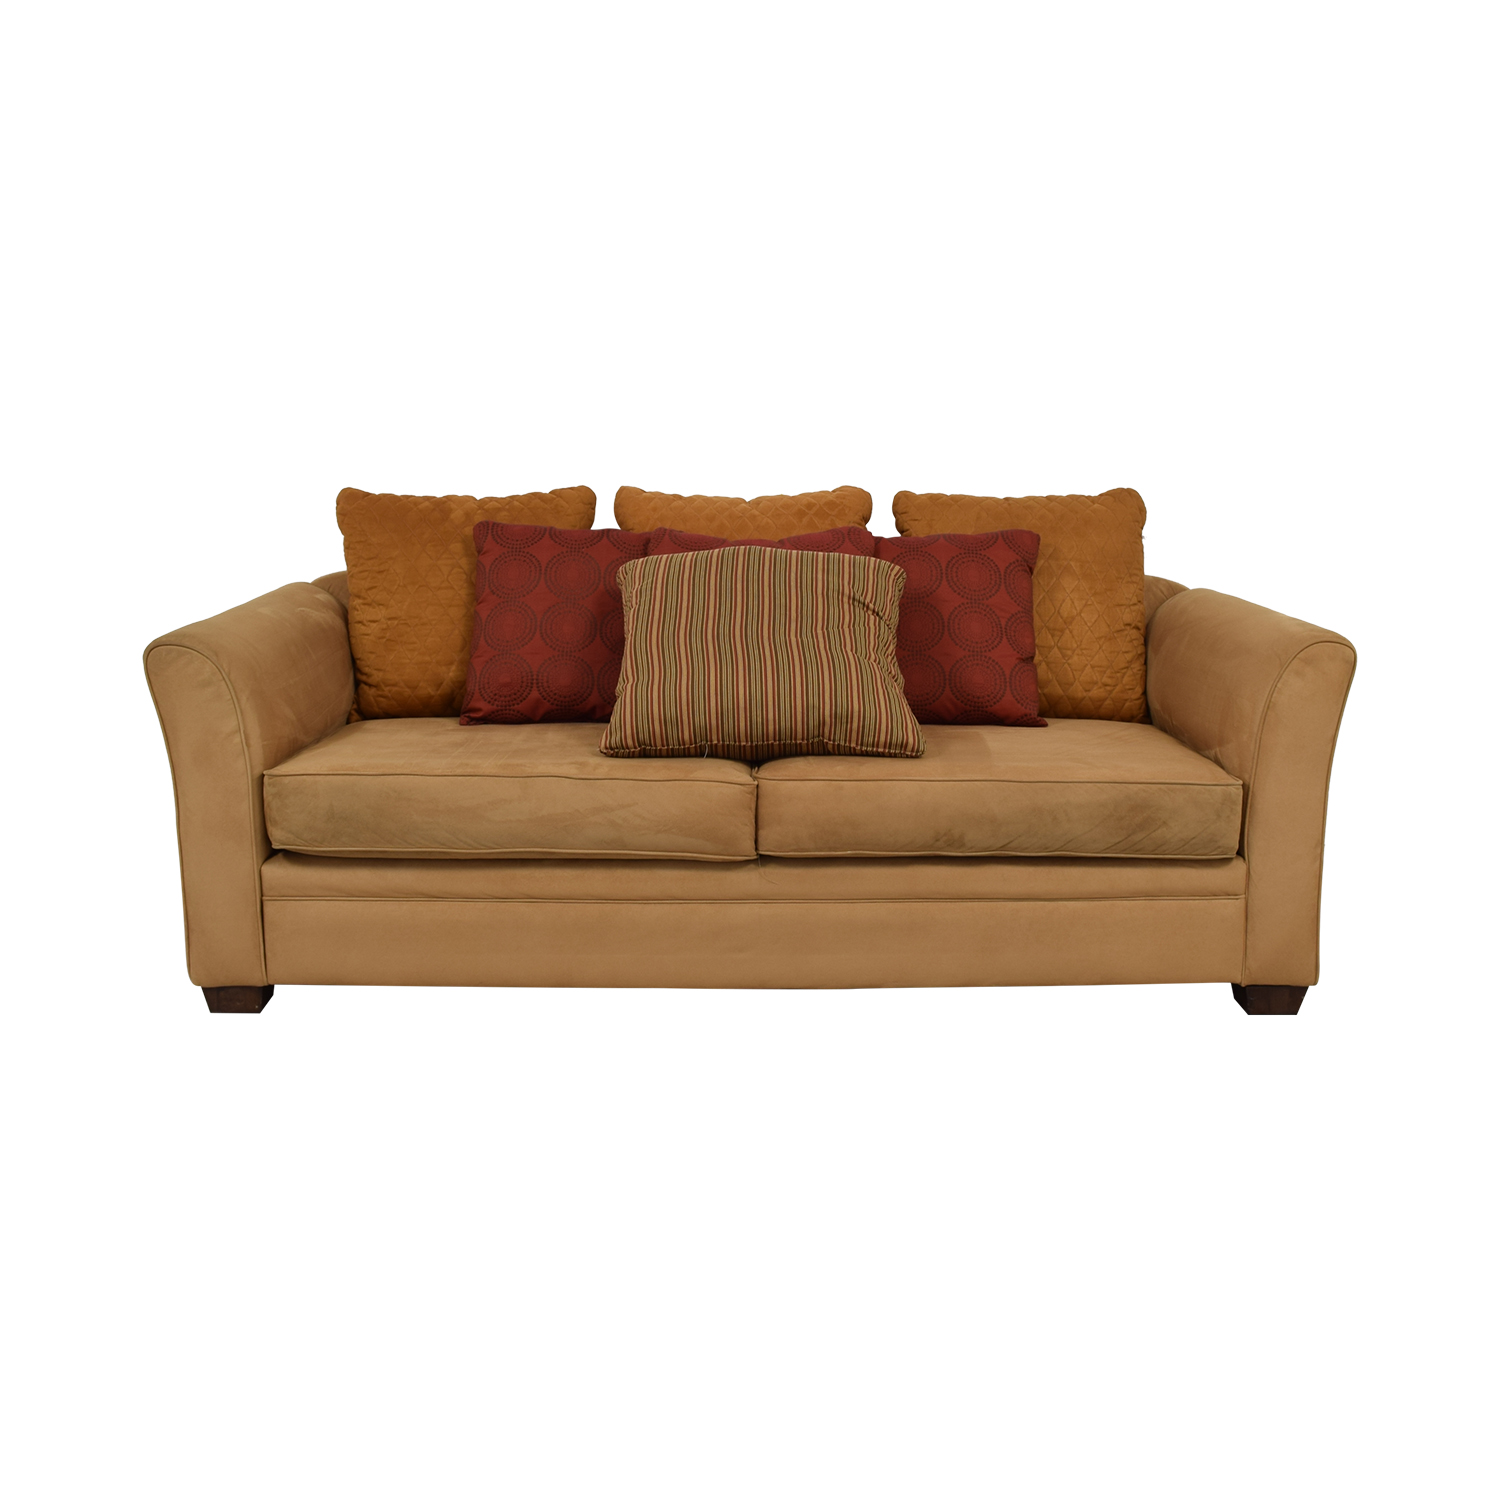 shop Raymour & Flanigan Camel Microsuede Two-Cushion Couch Raymour & Flanigan